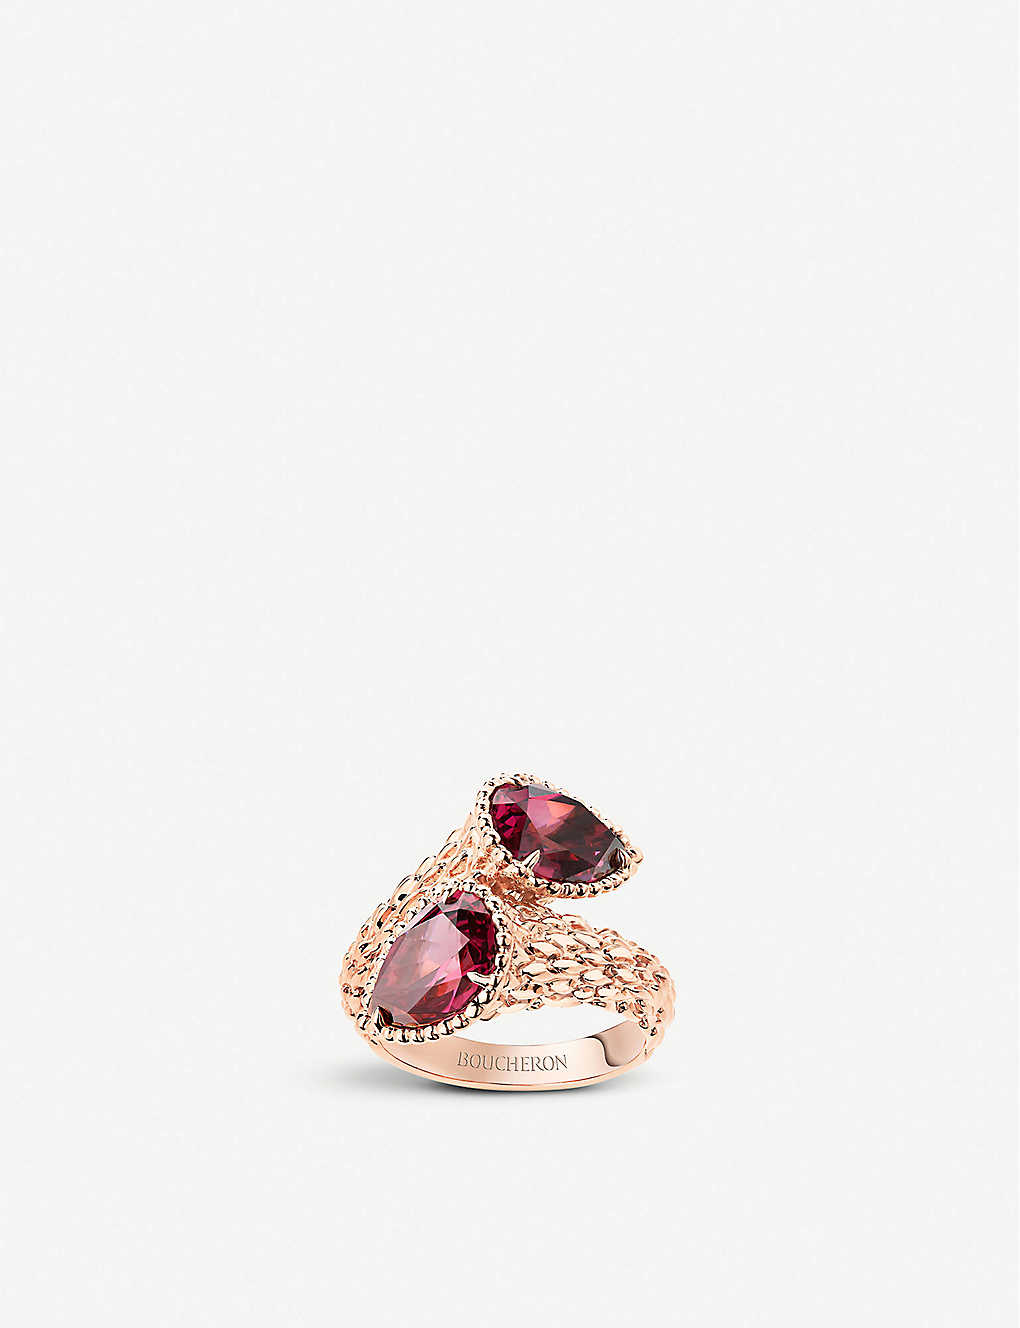 BOUCHERON: Serpent Bohème pink-gold and rhodolite garnet ring